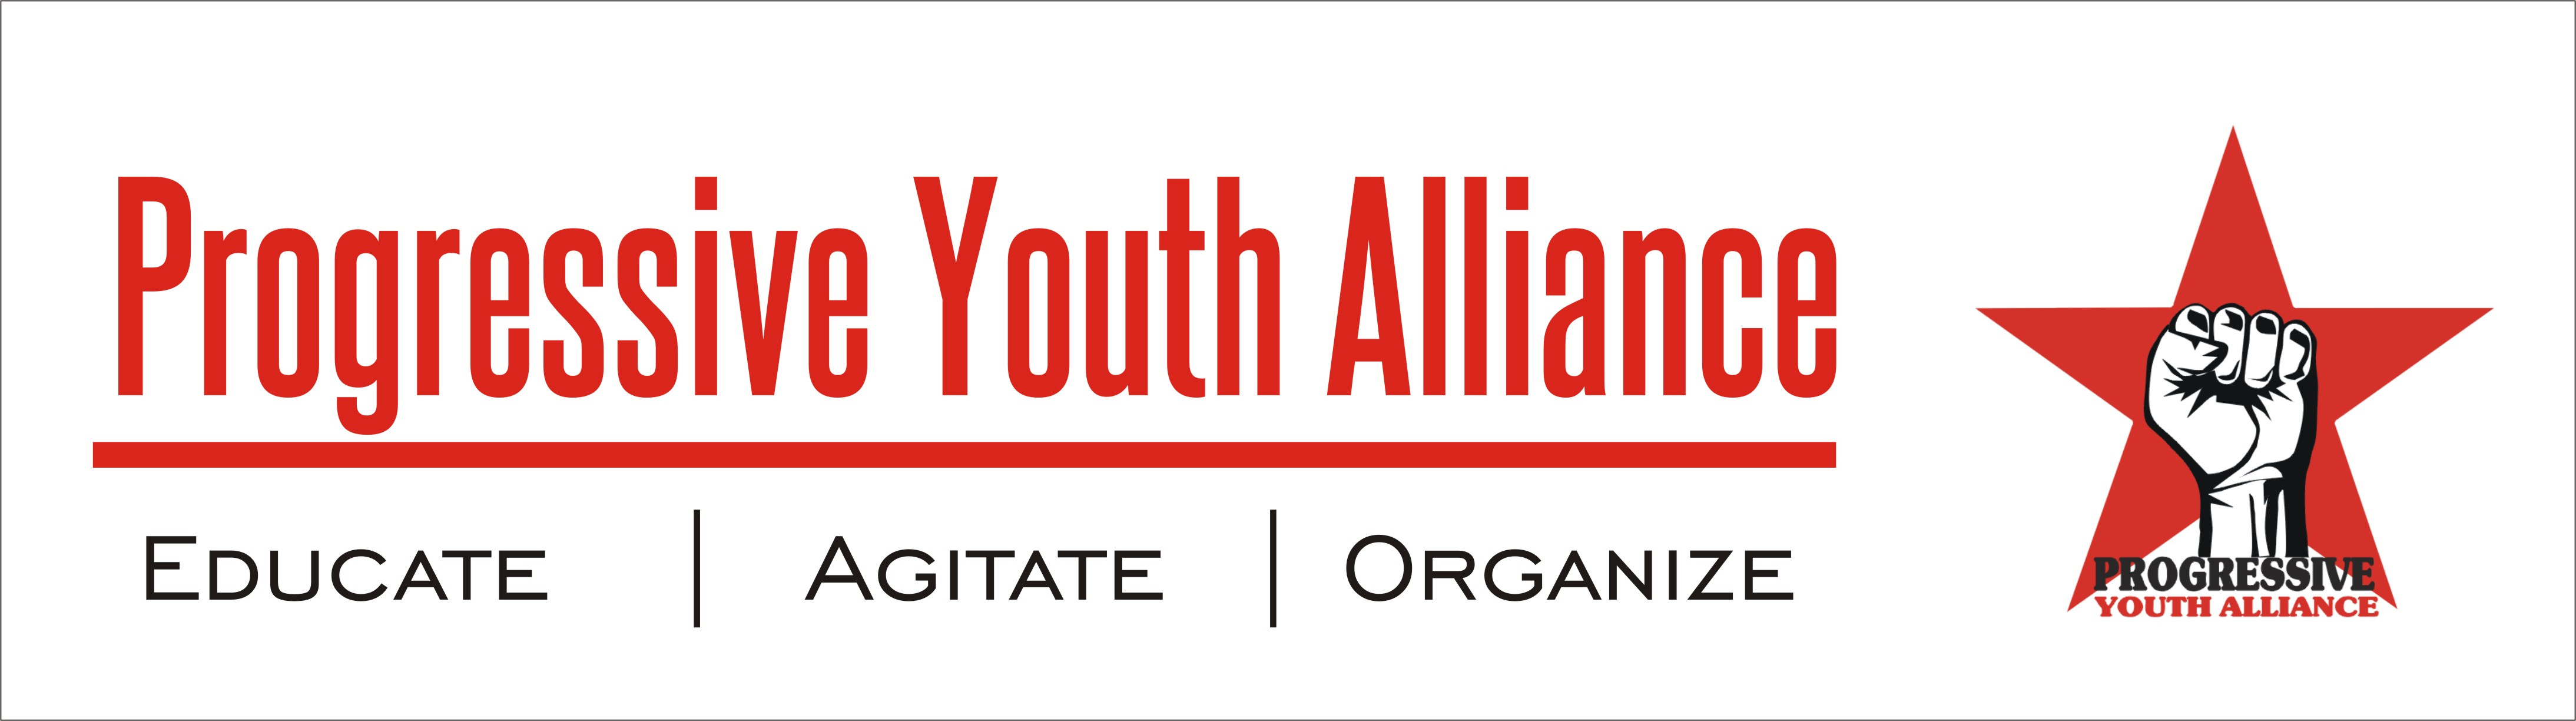 Progressive Youth Alliance